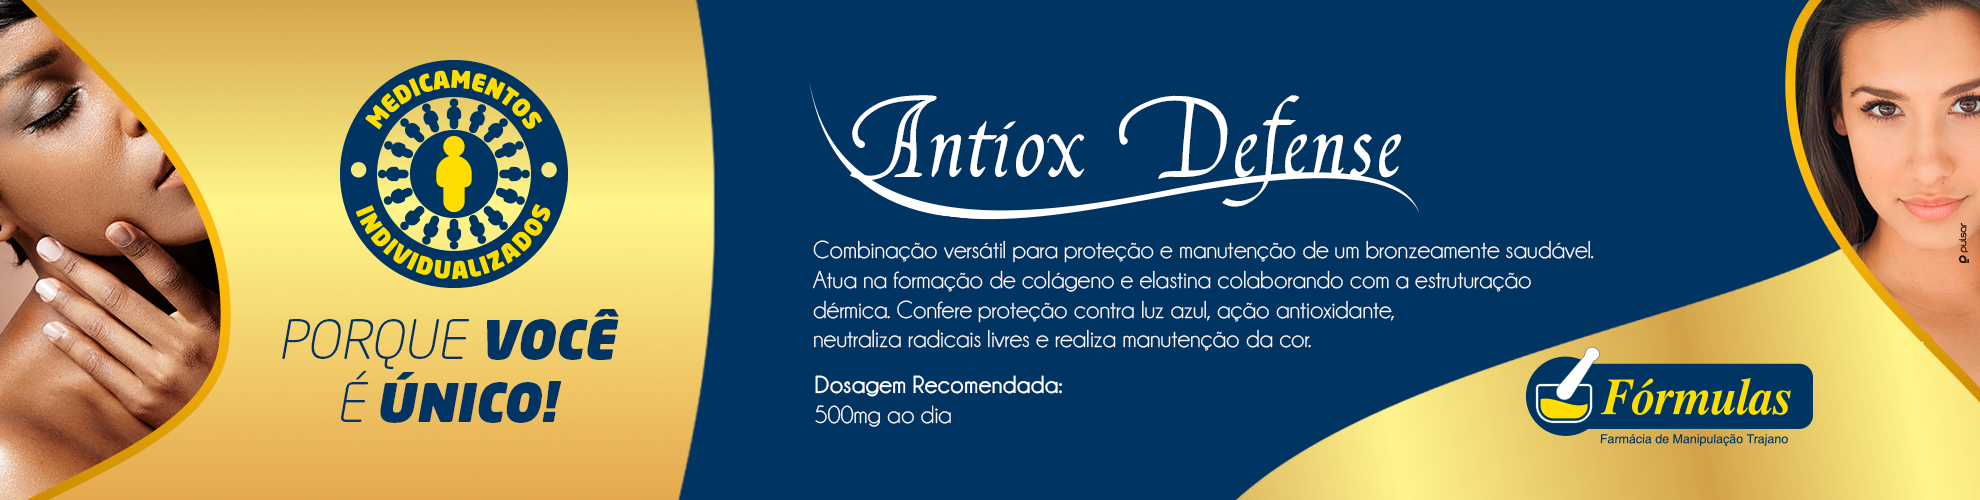 Antiox Defense!